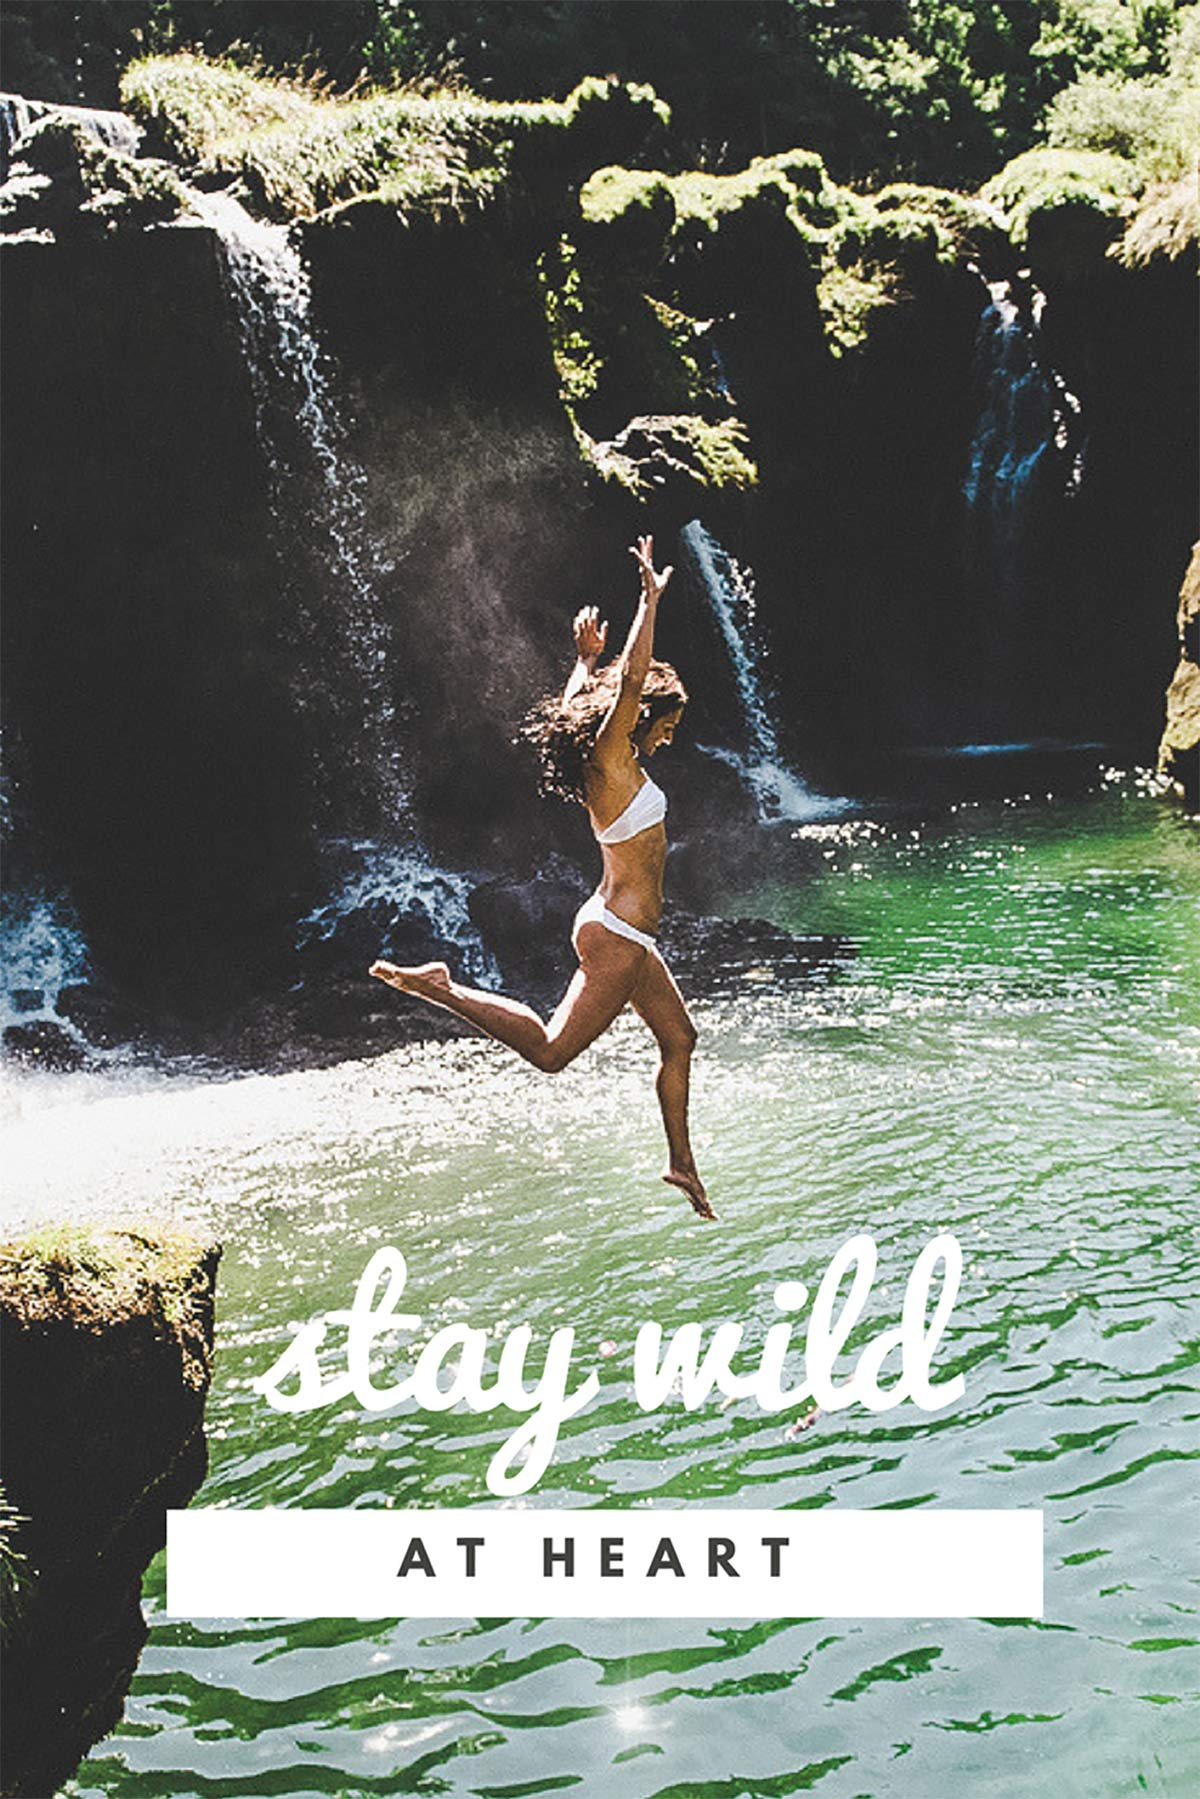 Stay wild at heart!